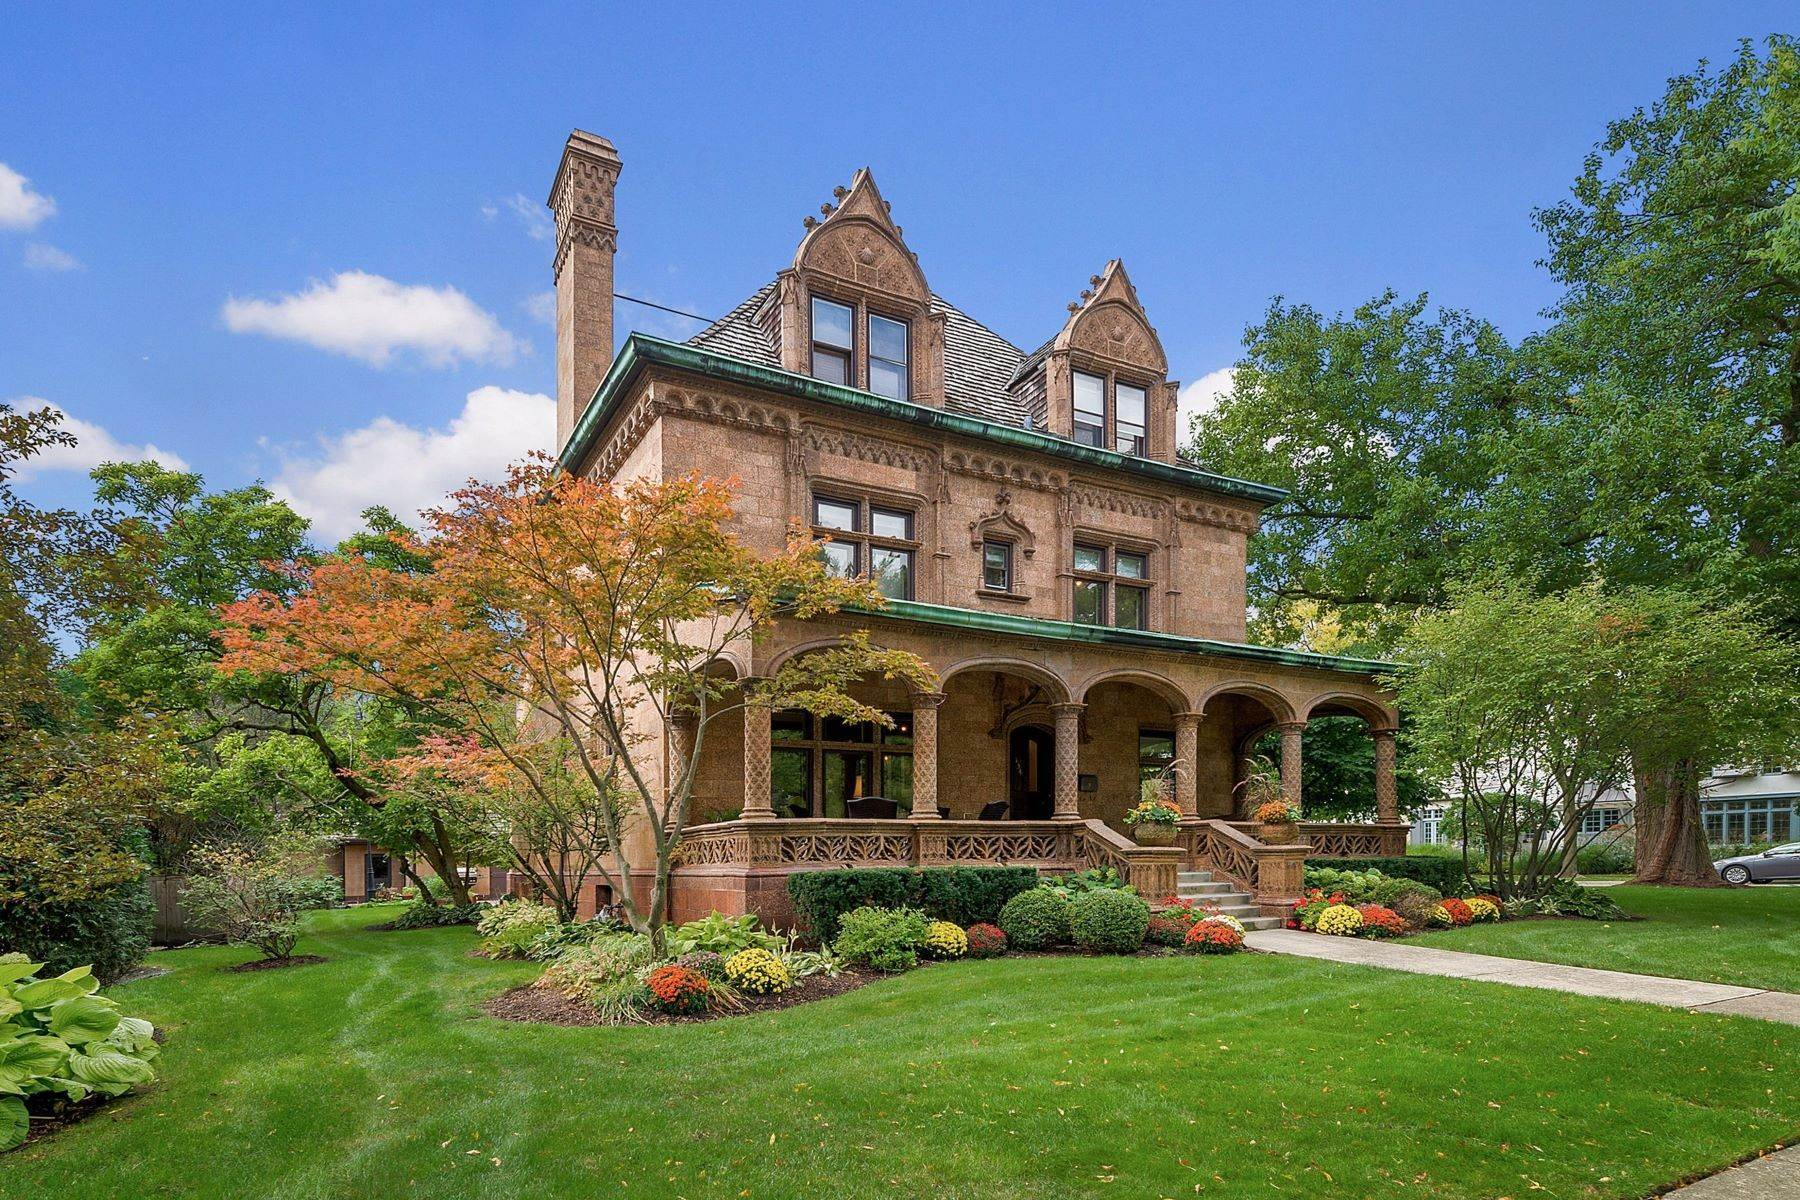 Single Family Homes for Sale at Hinsdale's Terra Cotta House 134 N Lincoln Street Hinsdale, Illinois 60521 United States